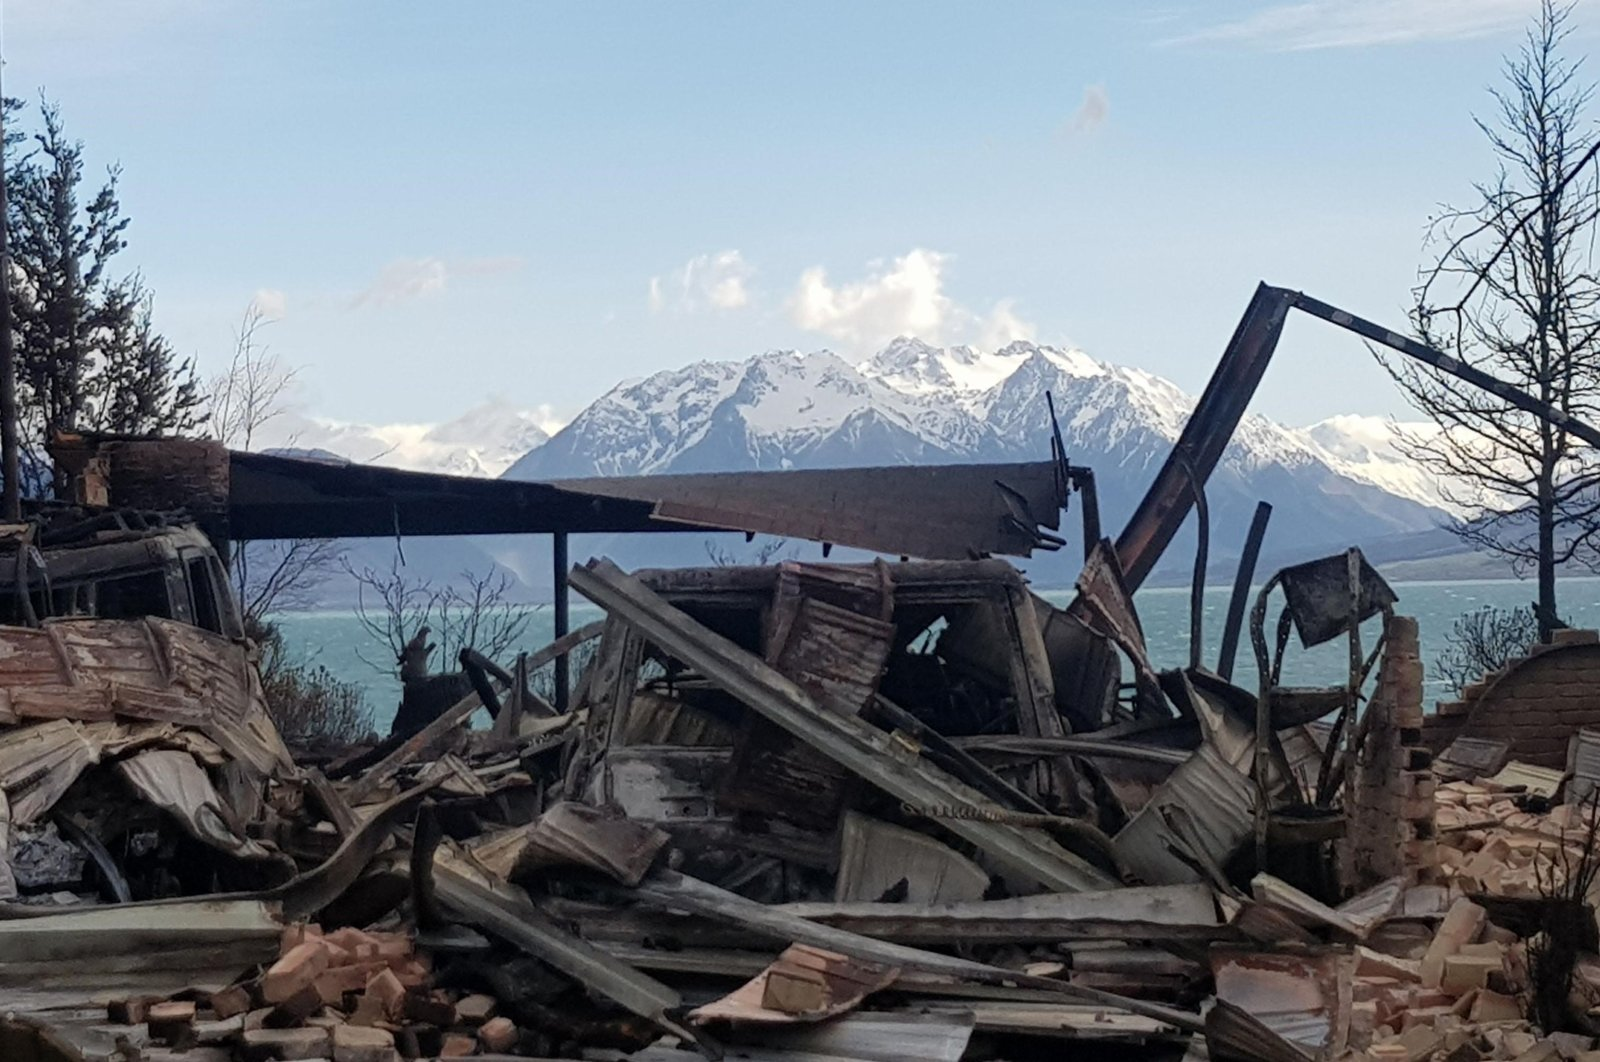 This handout photo taken and released on Oct. 5, 2020, shows damage caused by the South Island wildfires in Lake Ohau, New Zealand. (AFP Photo/Courtesy of Gary Kircher)